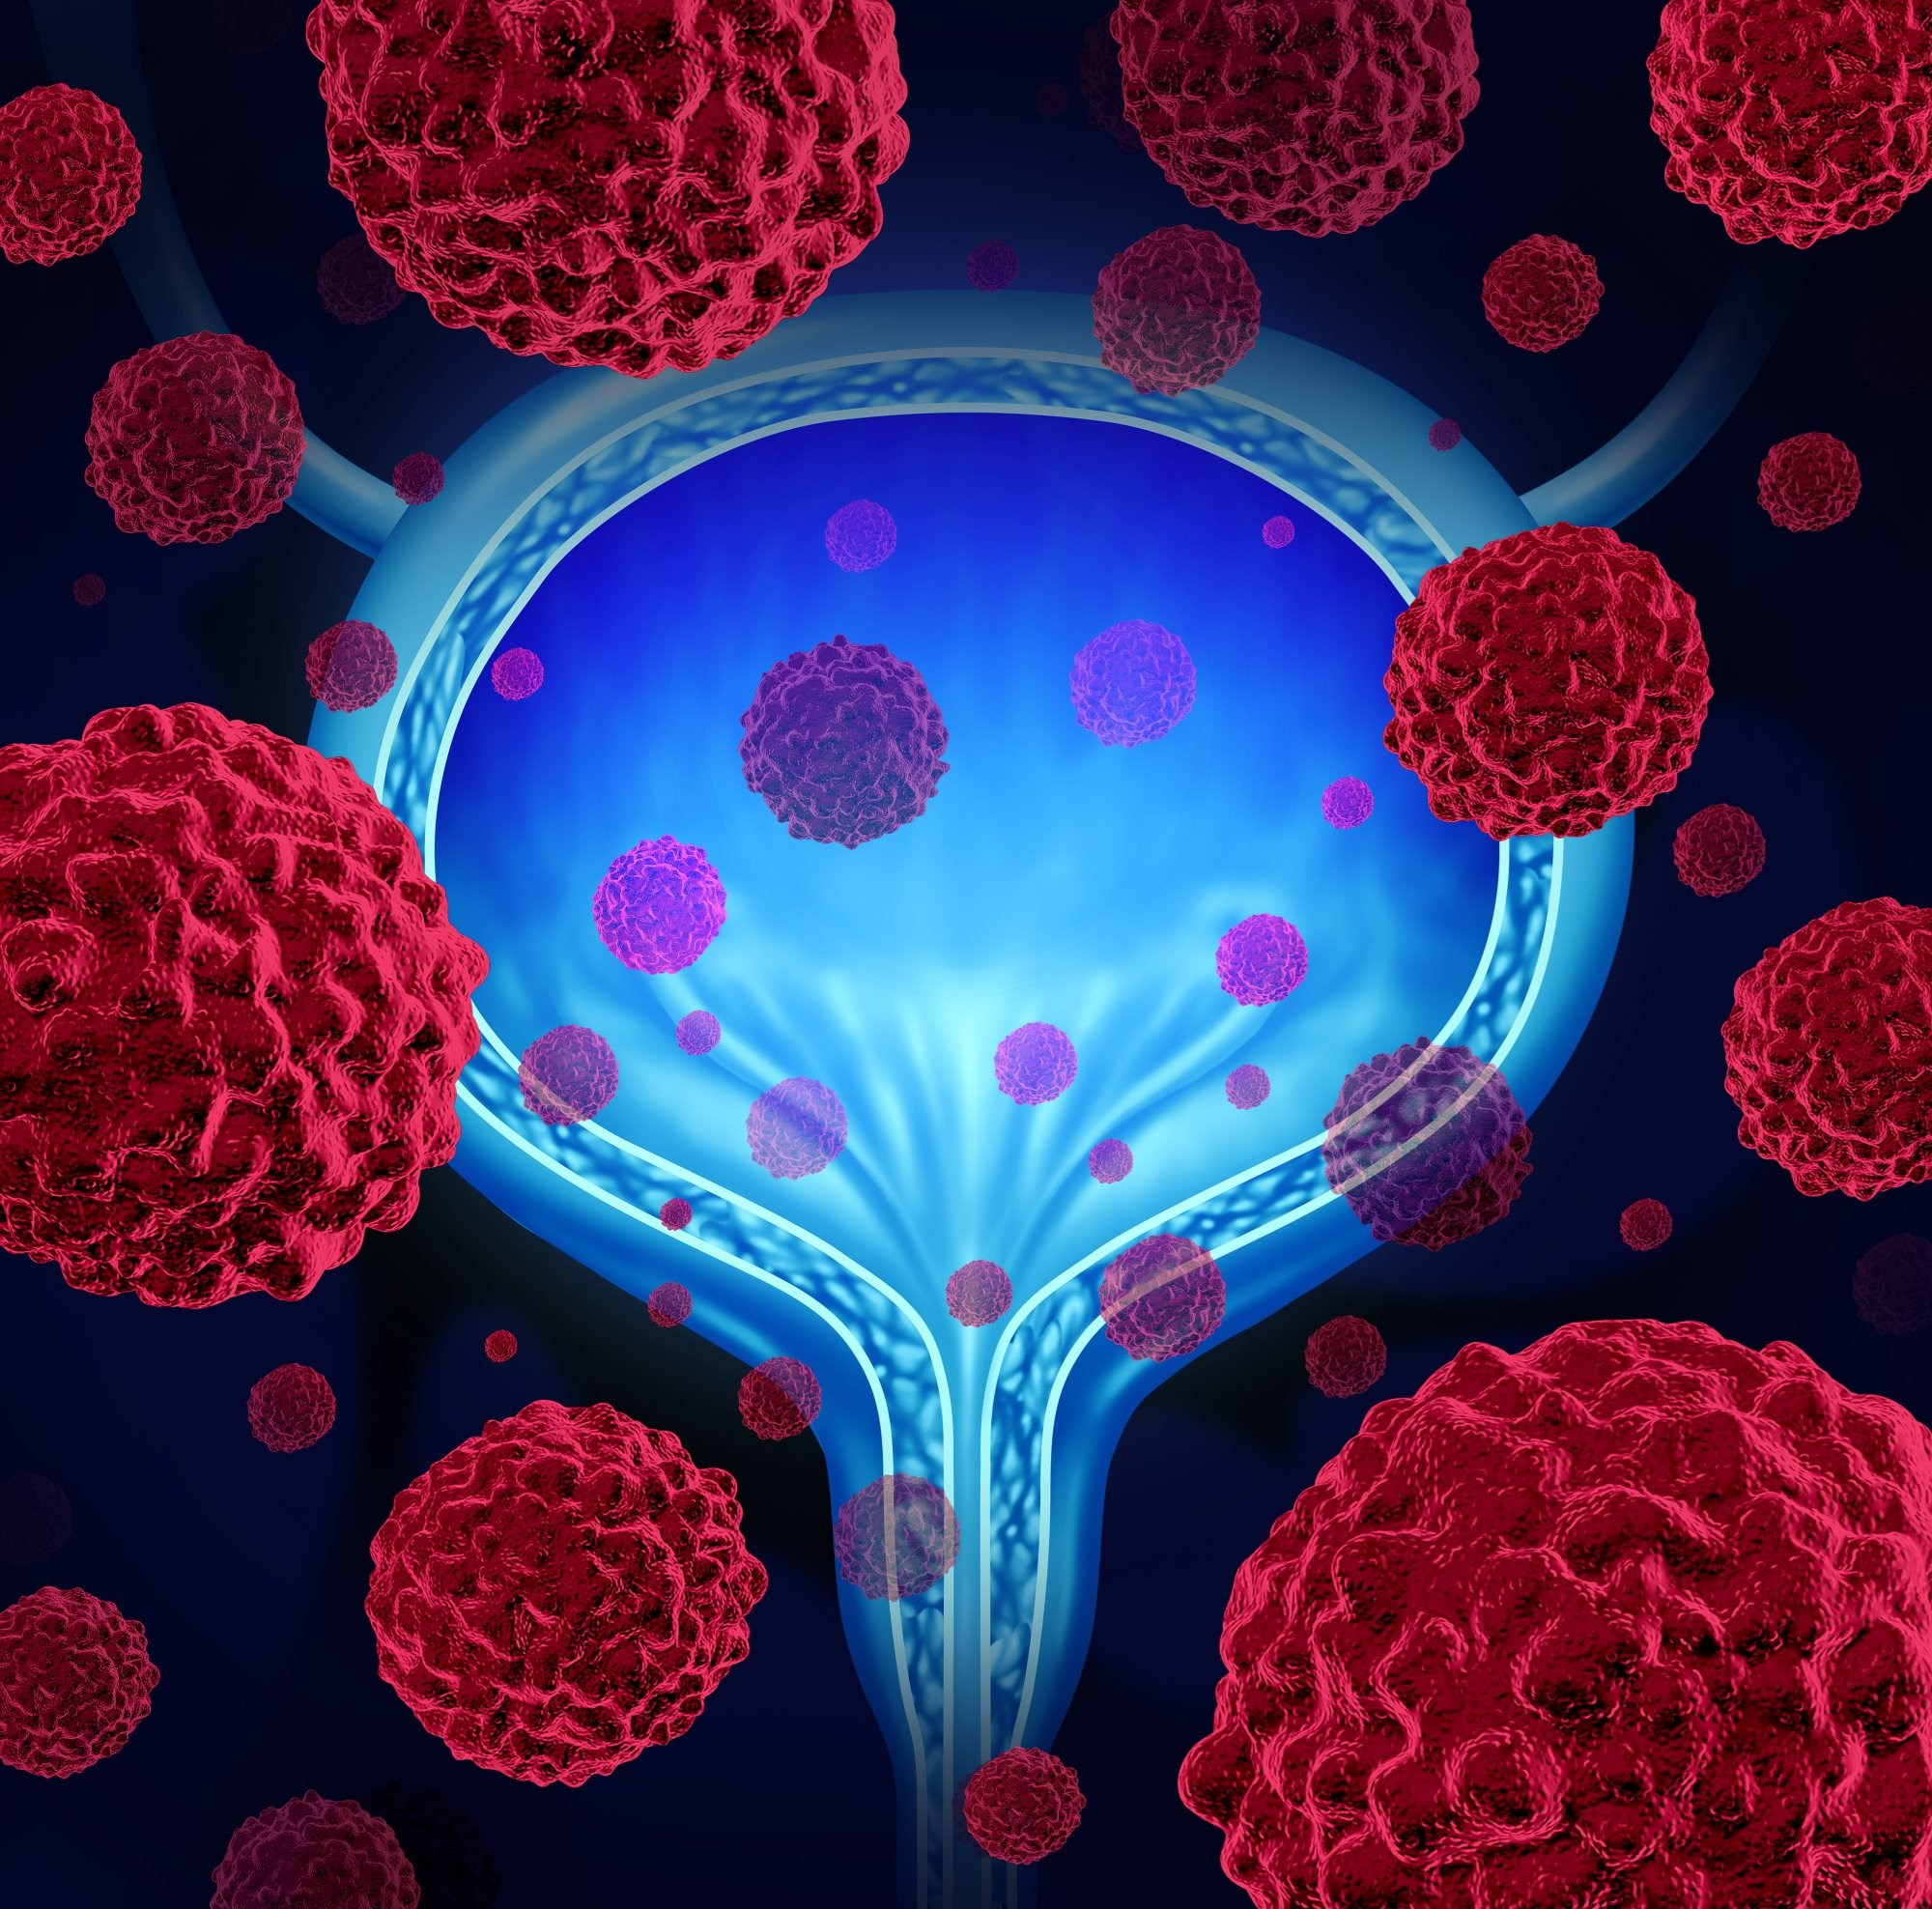 Bladder Cancer Progression Linked to Collagen Changes